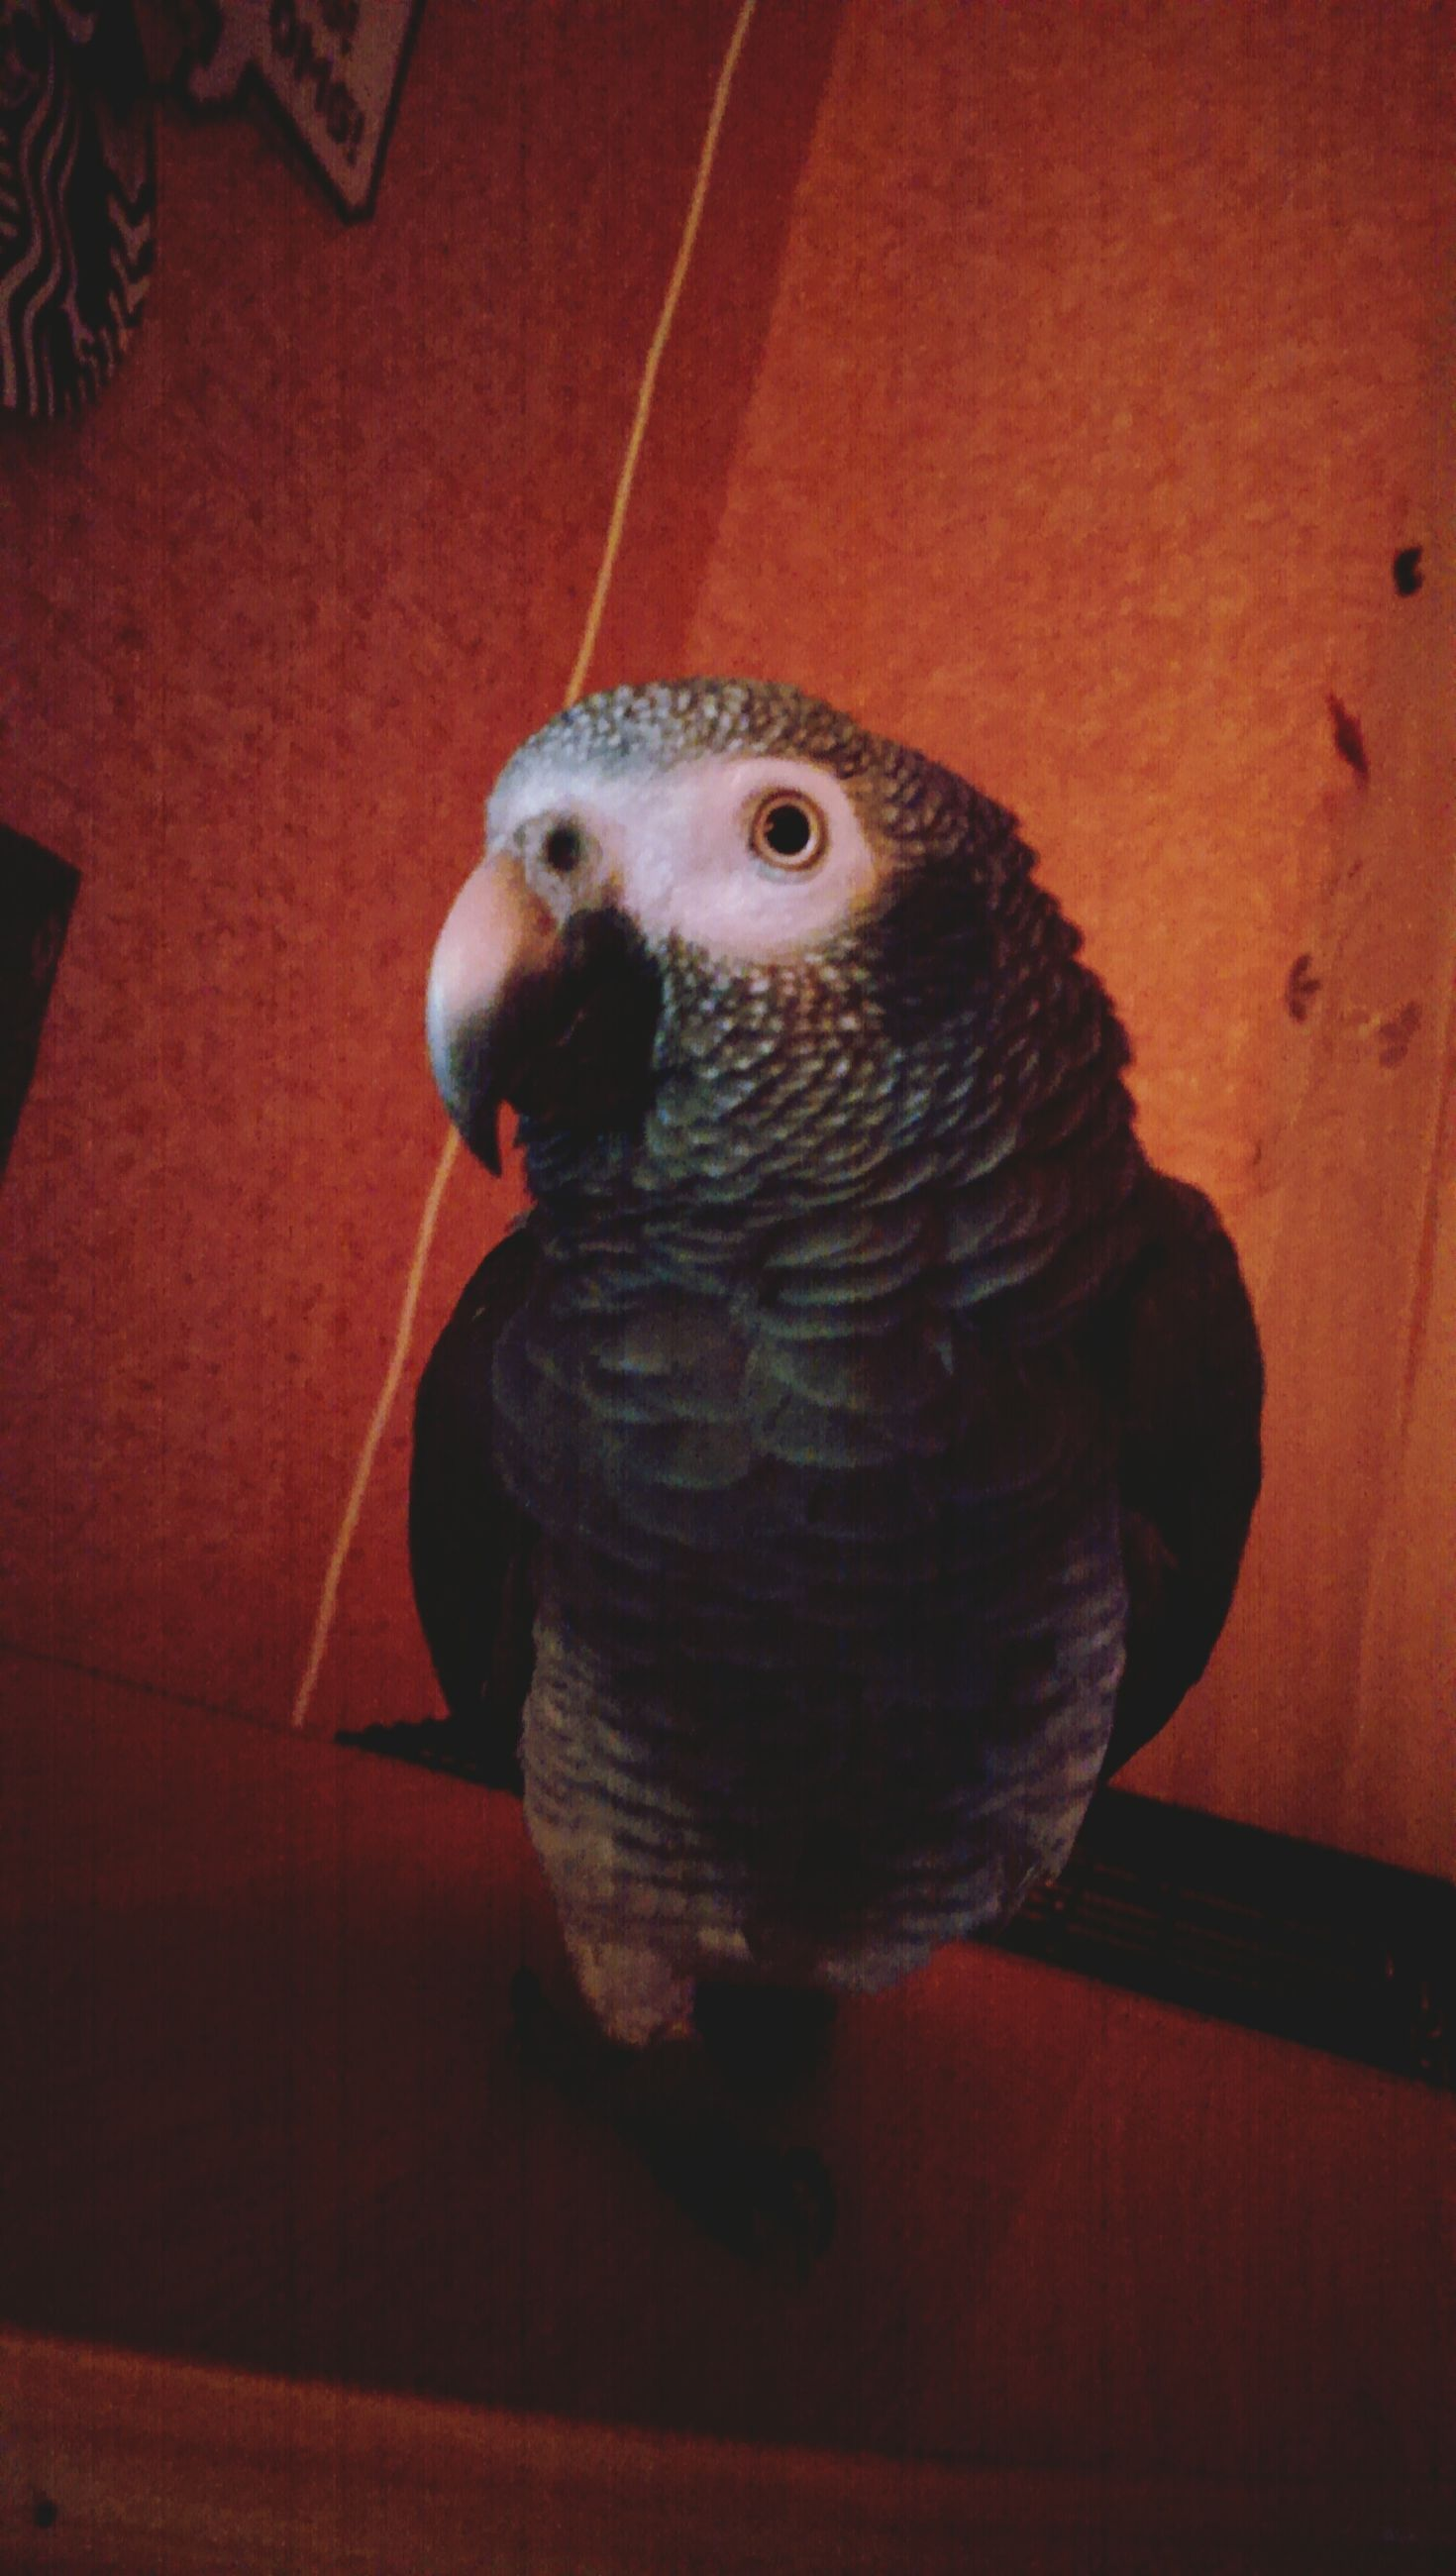 animal themes, one animal, indoors, wildlife, portrait, animals in the wild, looking at camera, bird, close-up, animal head, animal representation, pets, no people, sitting, domestic animals, home interior, full length, toy, looking